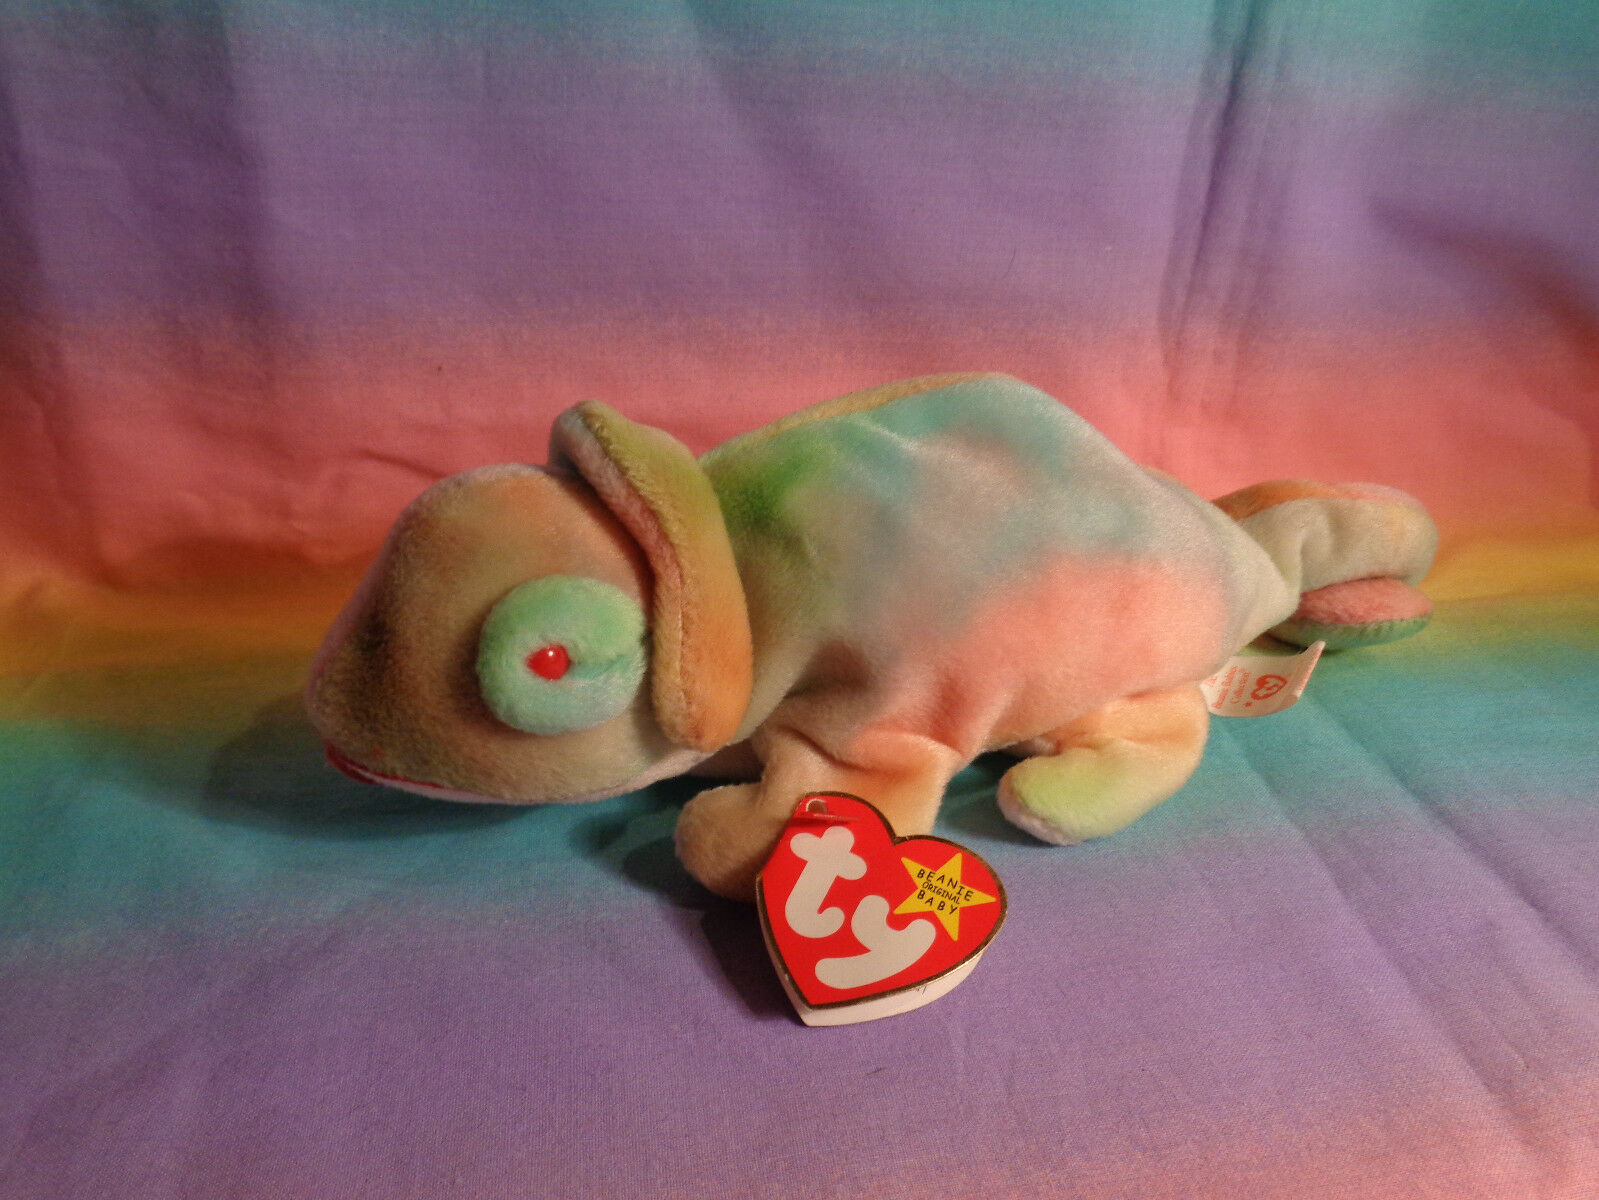 Vintage 1997 Ty Beanie Baby Rainbow Chameleon Bean Bag Plush w/ Tags - as is image 3